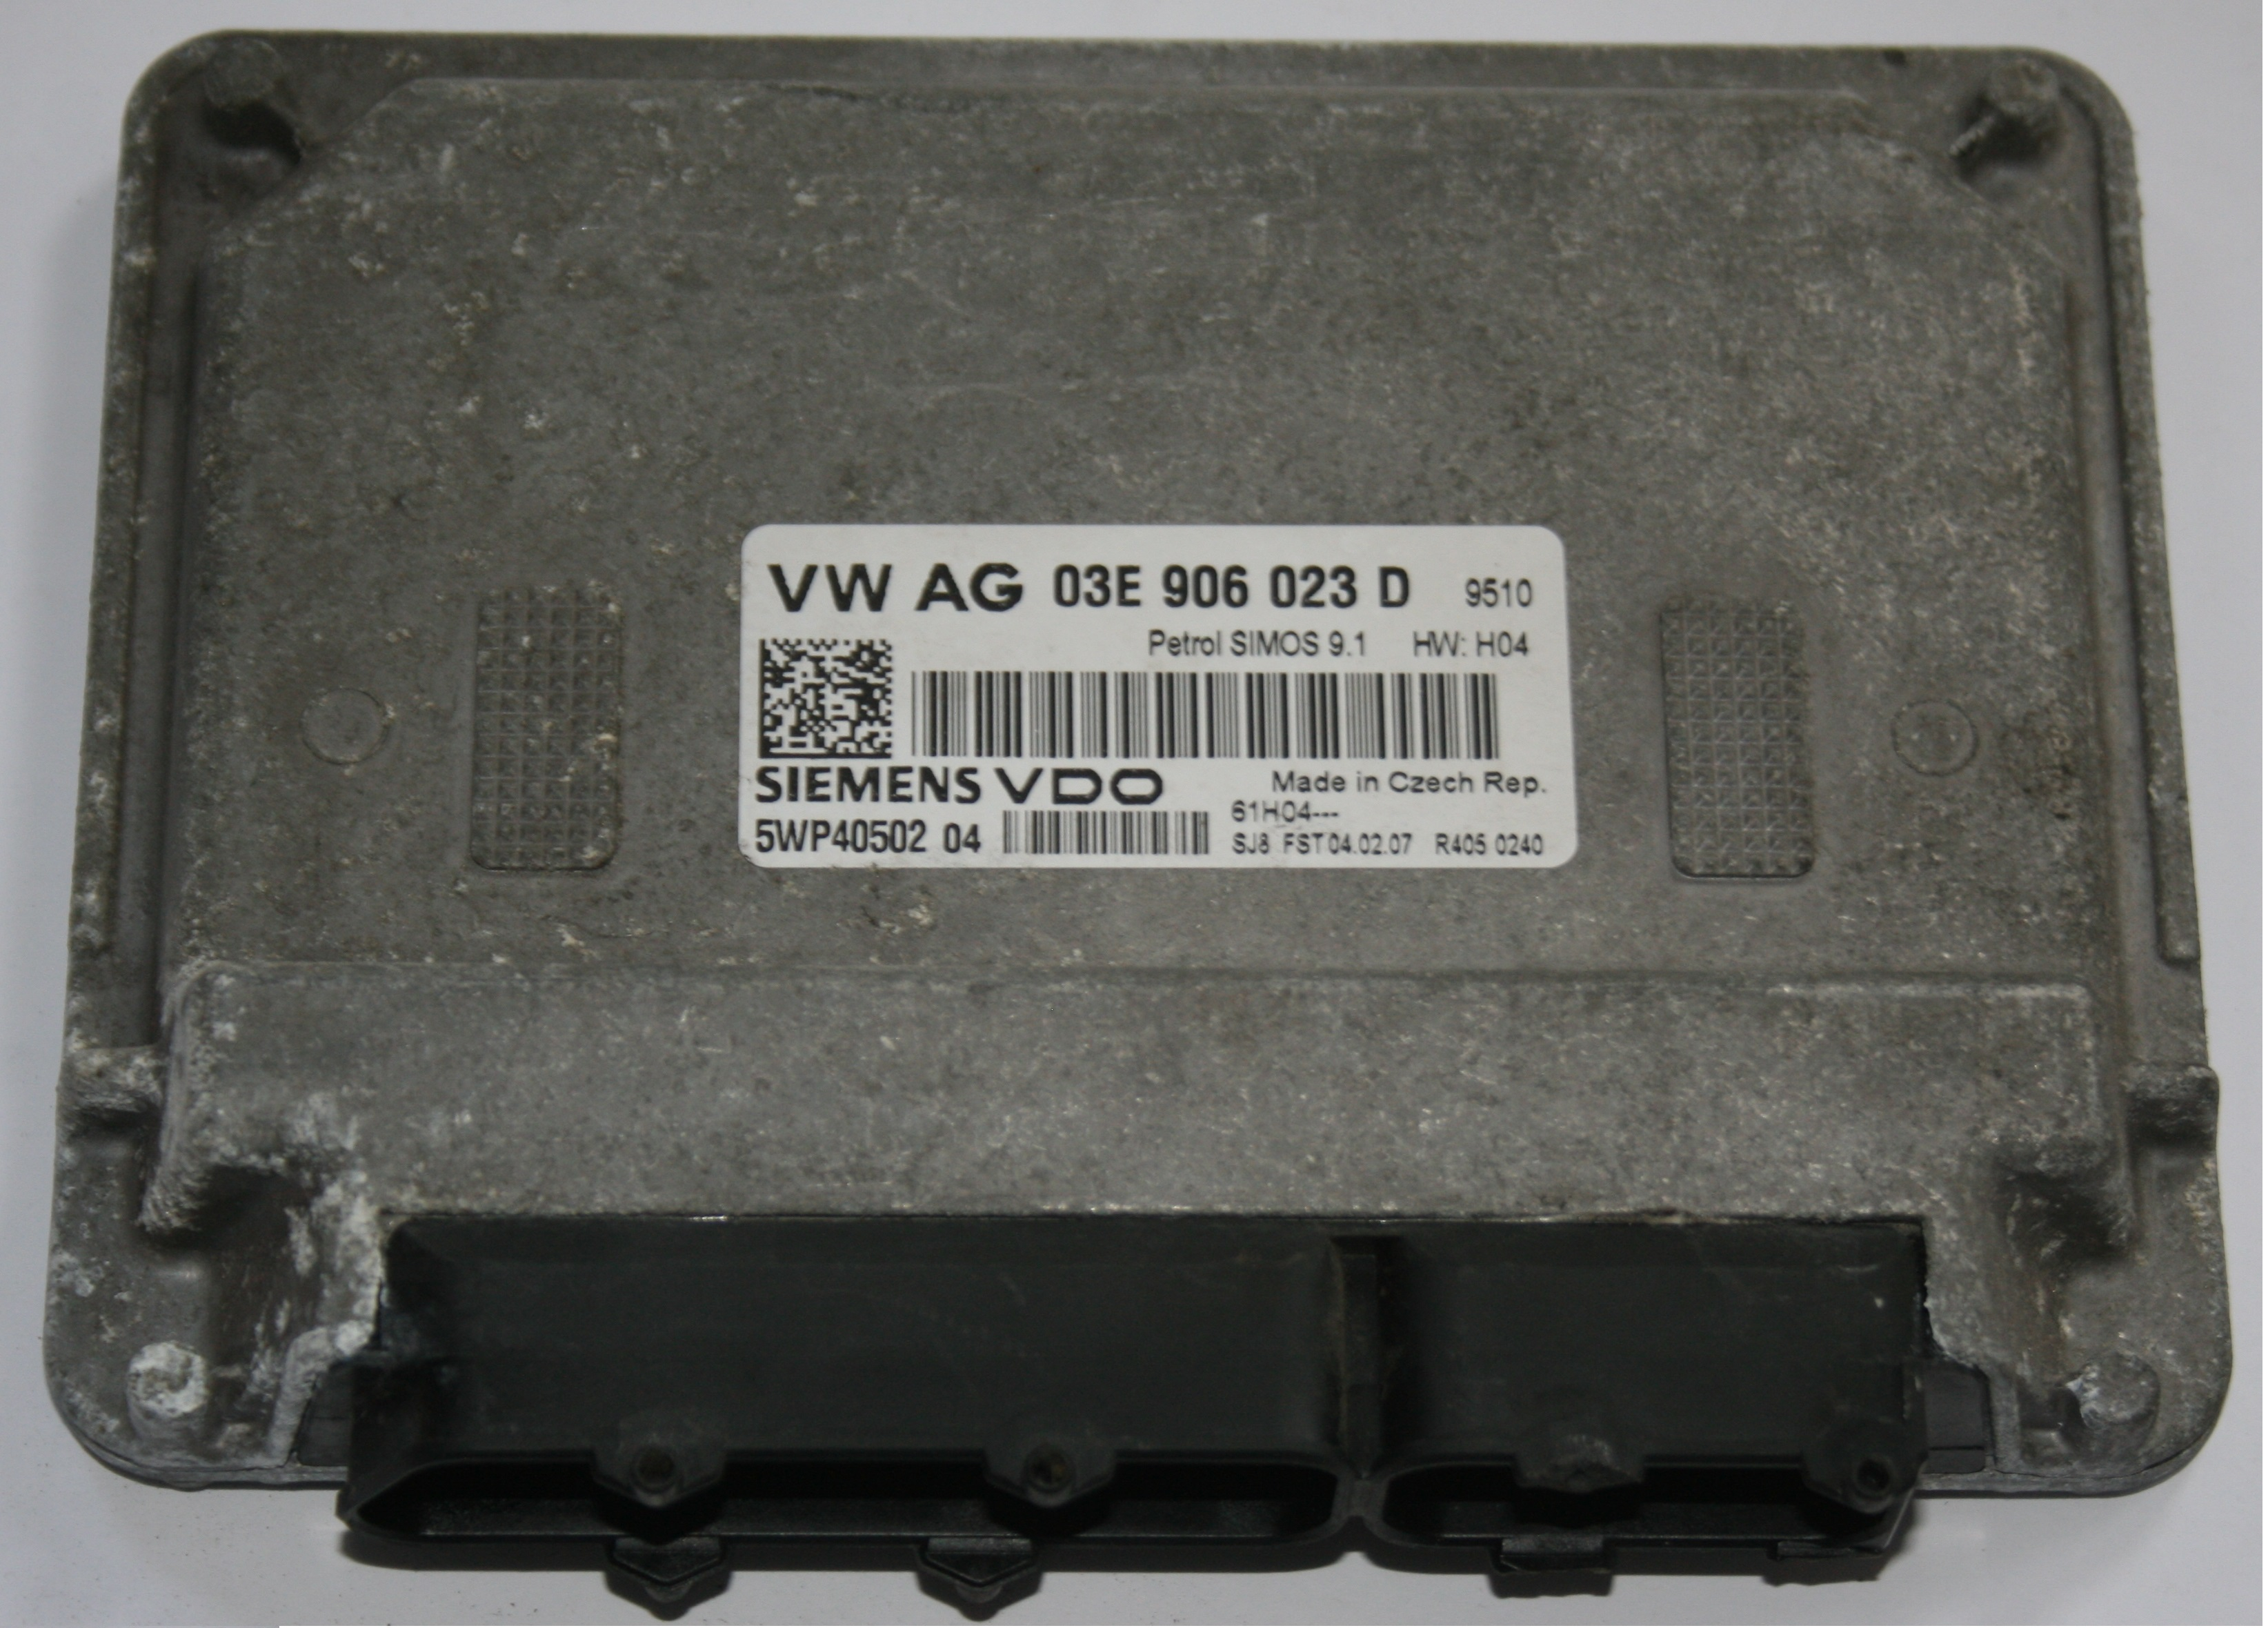 Used Genuine VW Polo Ecu Pre-programmed - No coding required